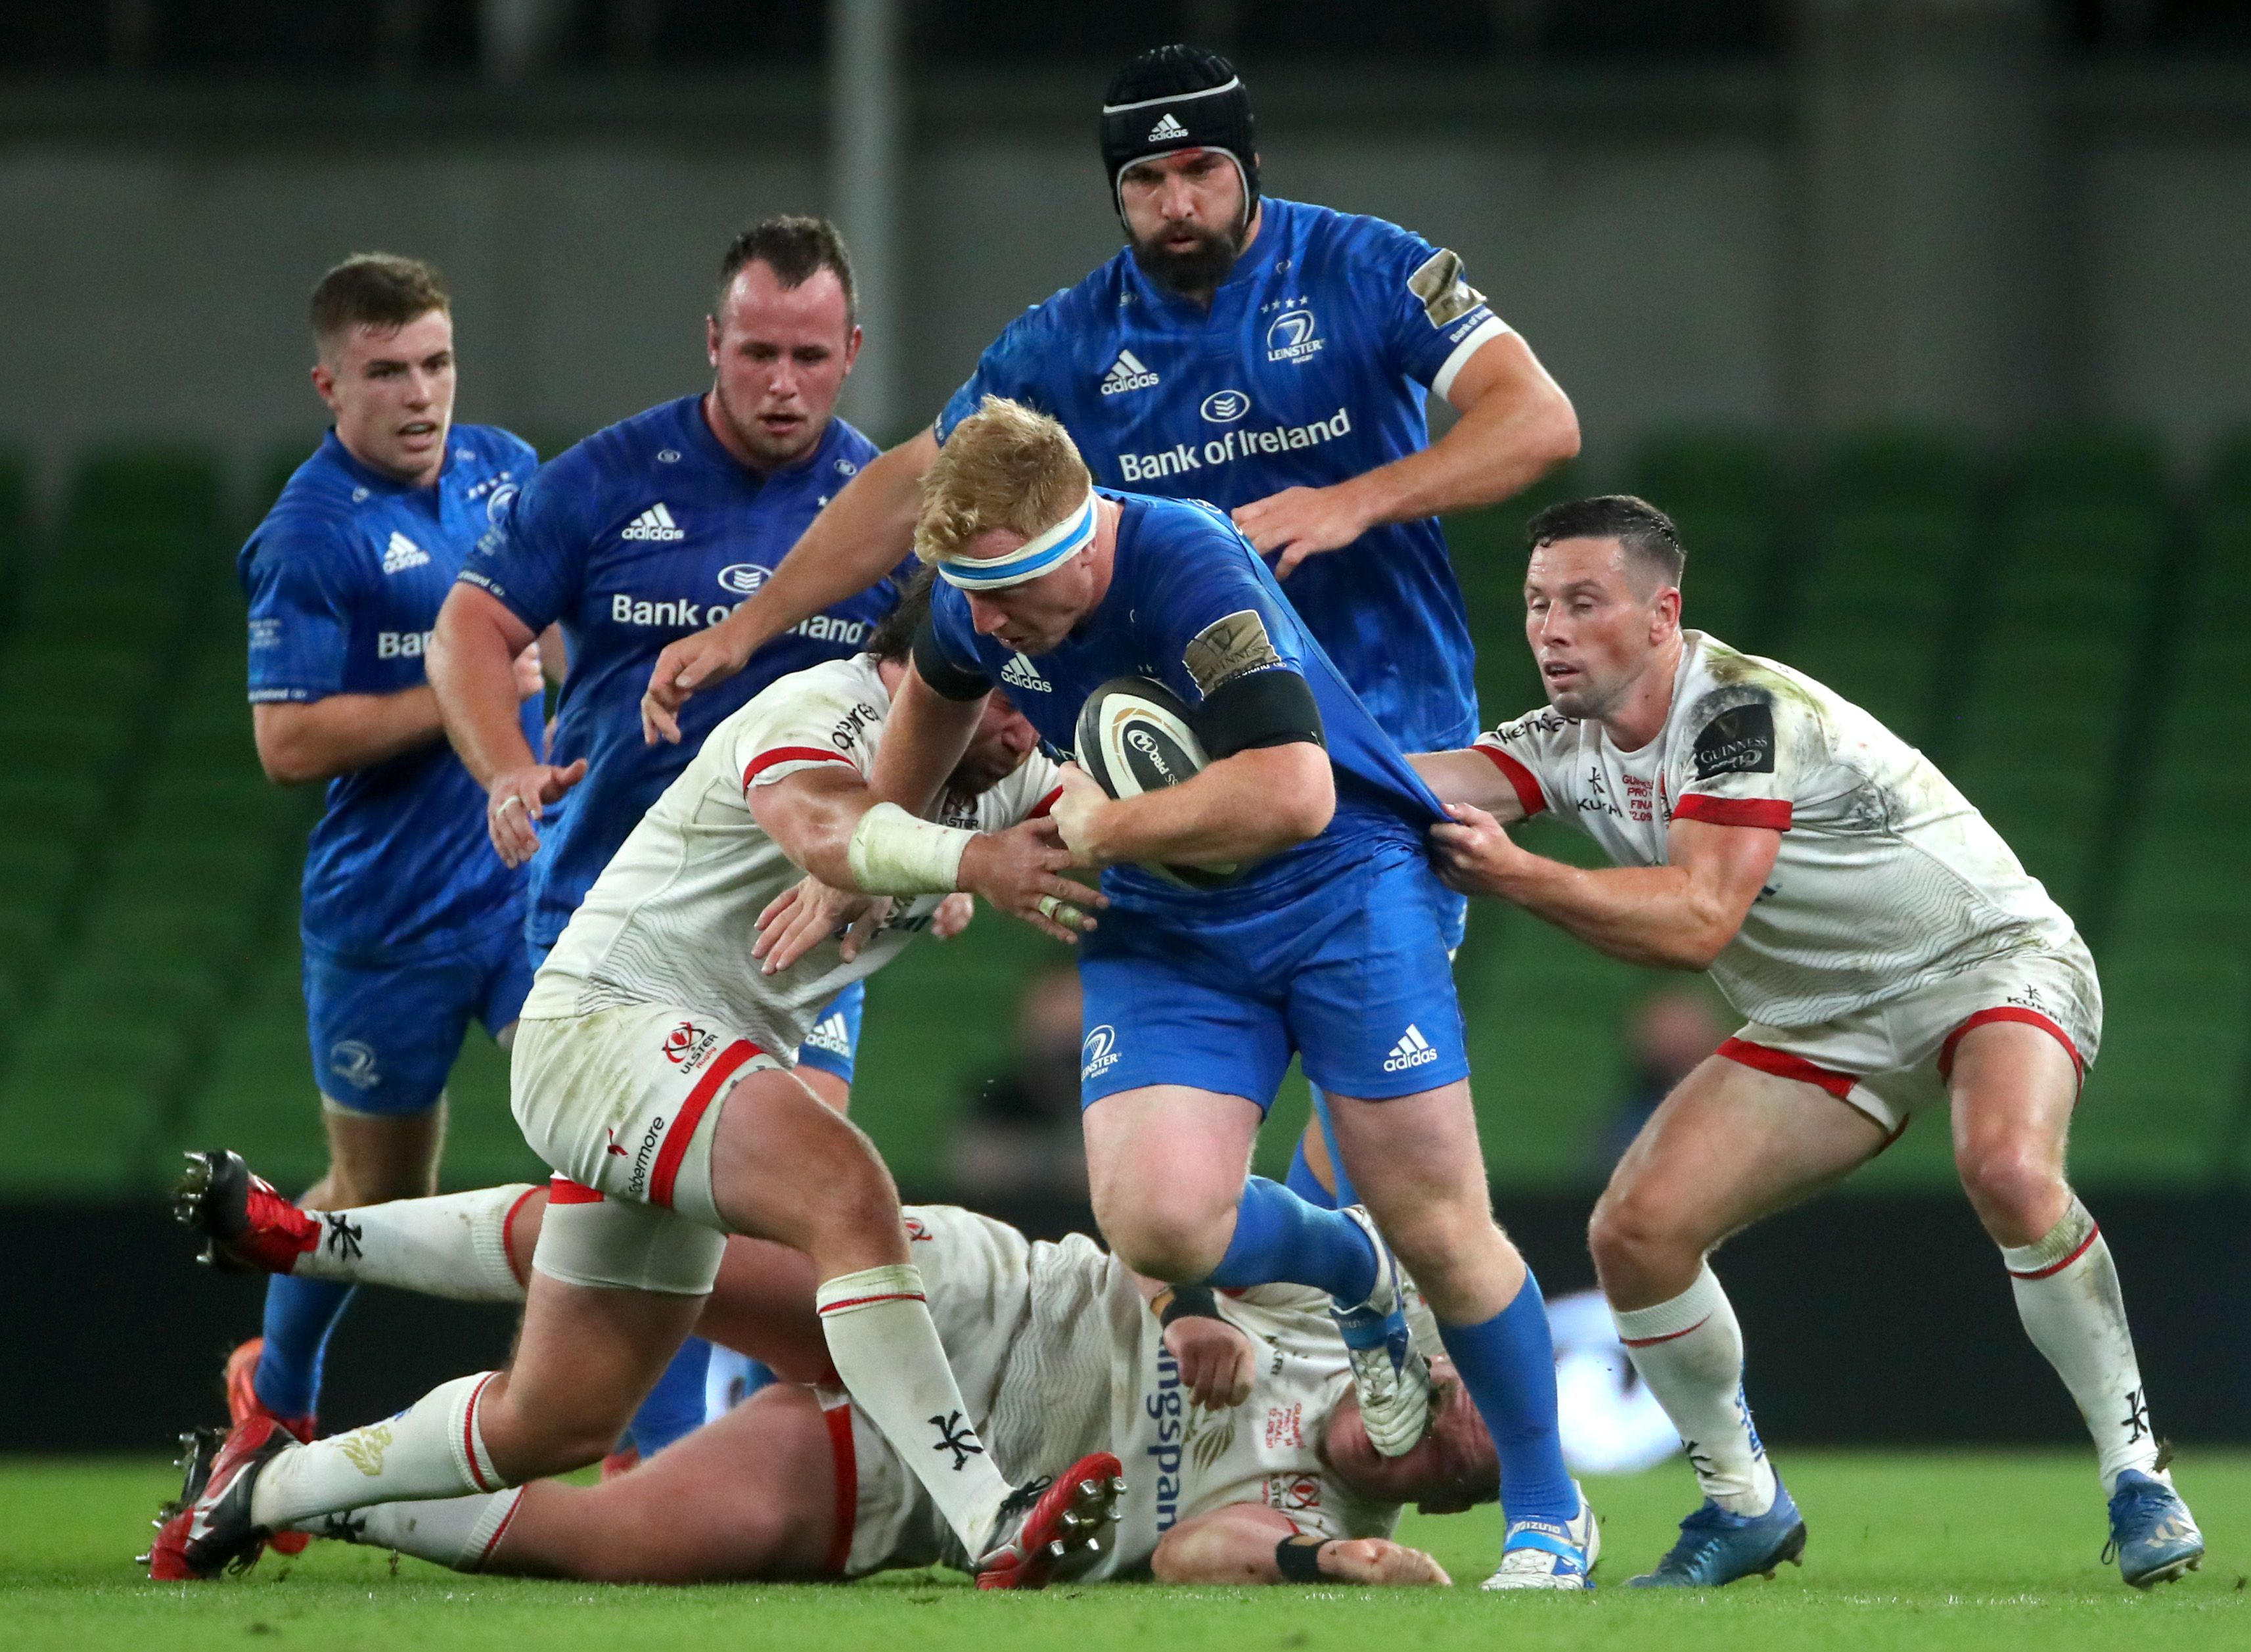 Leinster have enjoyed the upper hand in recent battles with Ulster including last season\'s PRO14 final